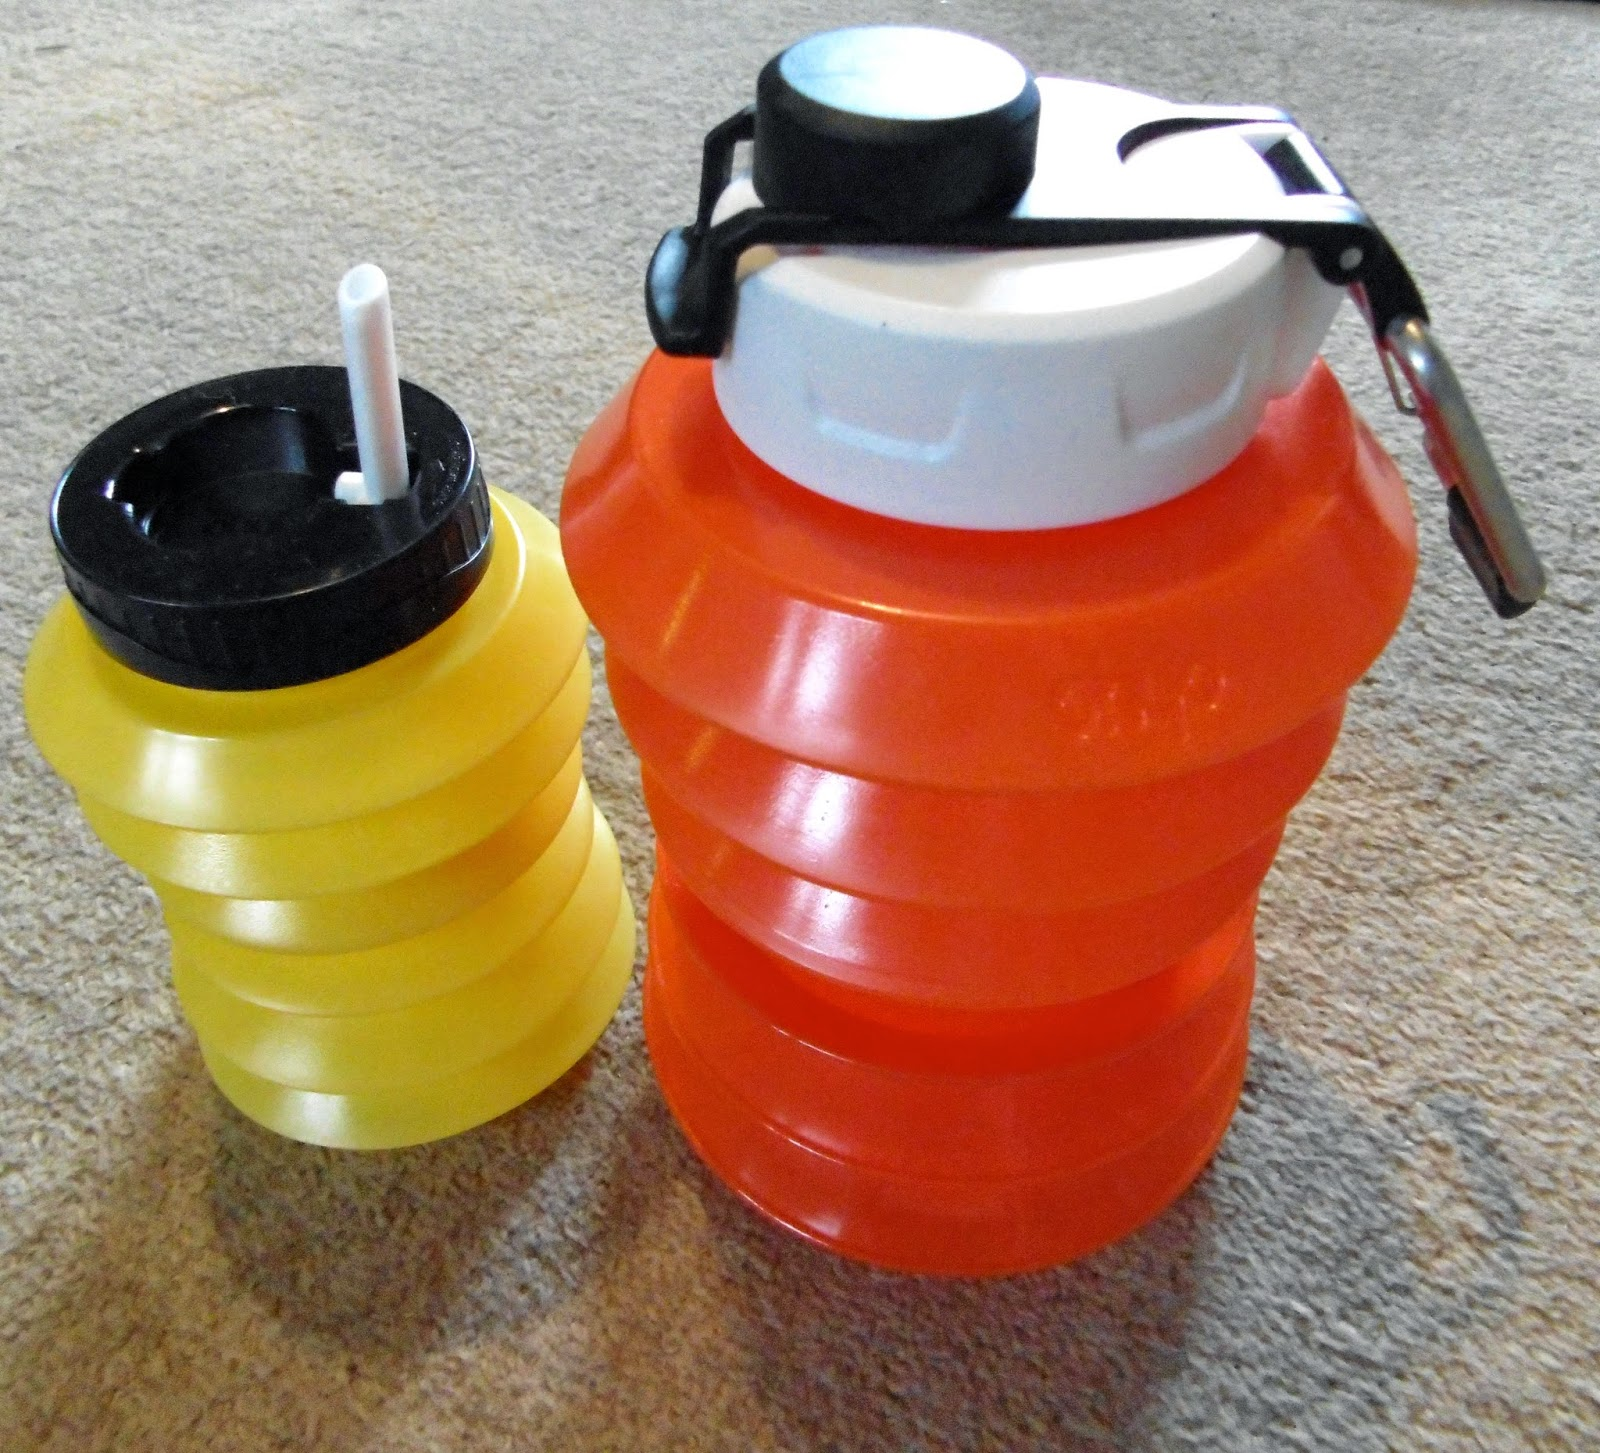 500ml and 1 litre Ohyo Callapsabottles